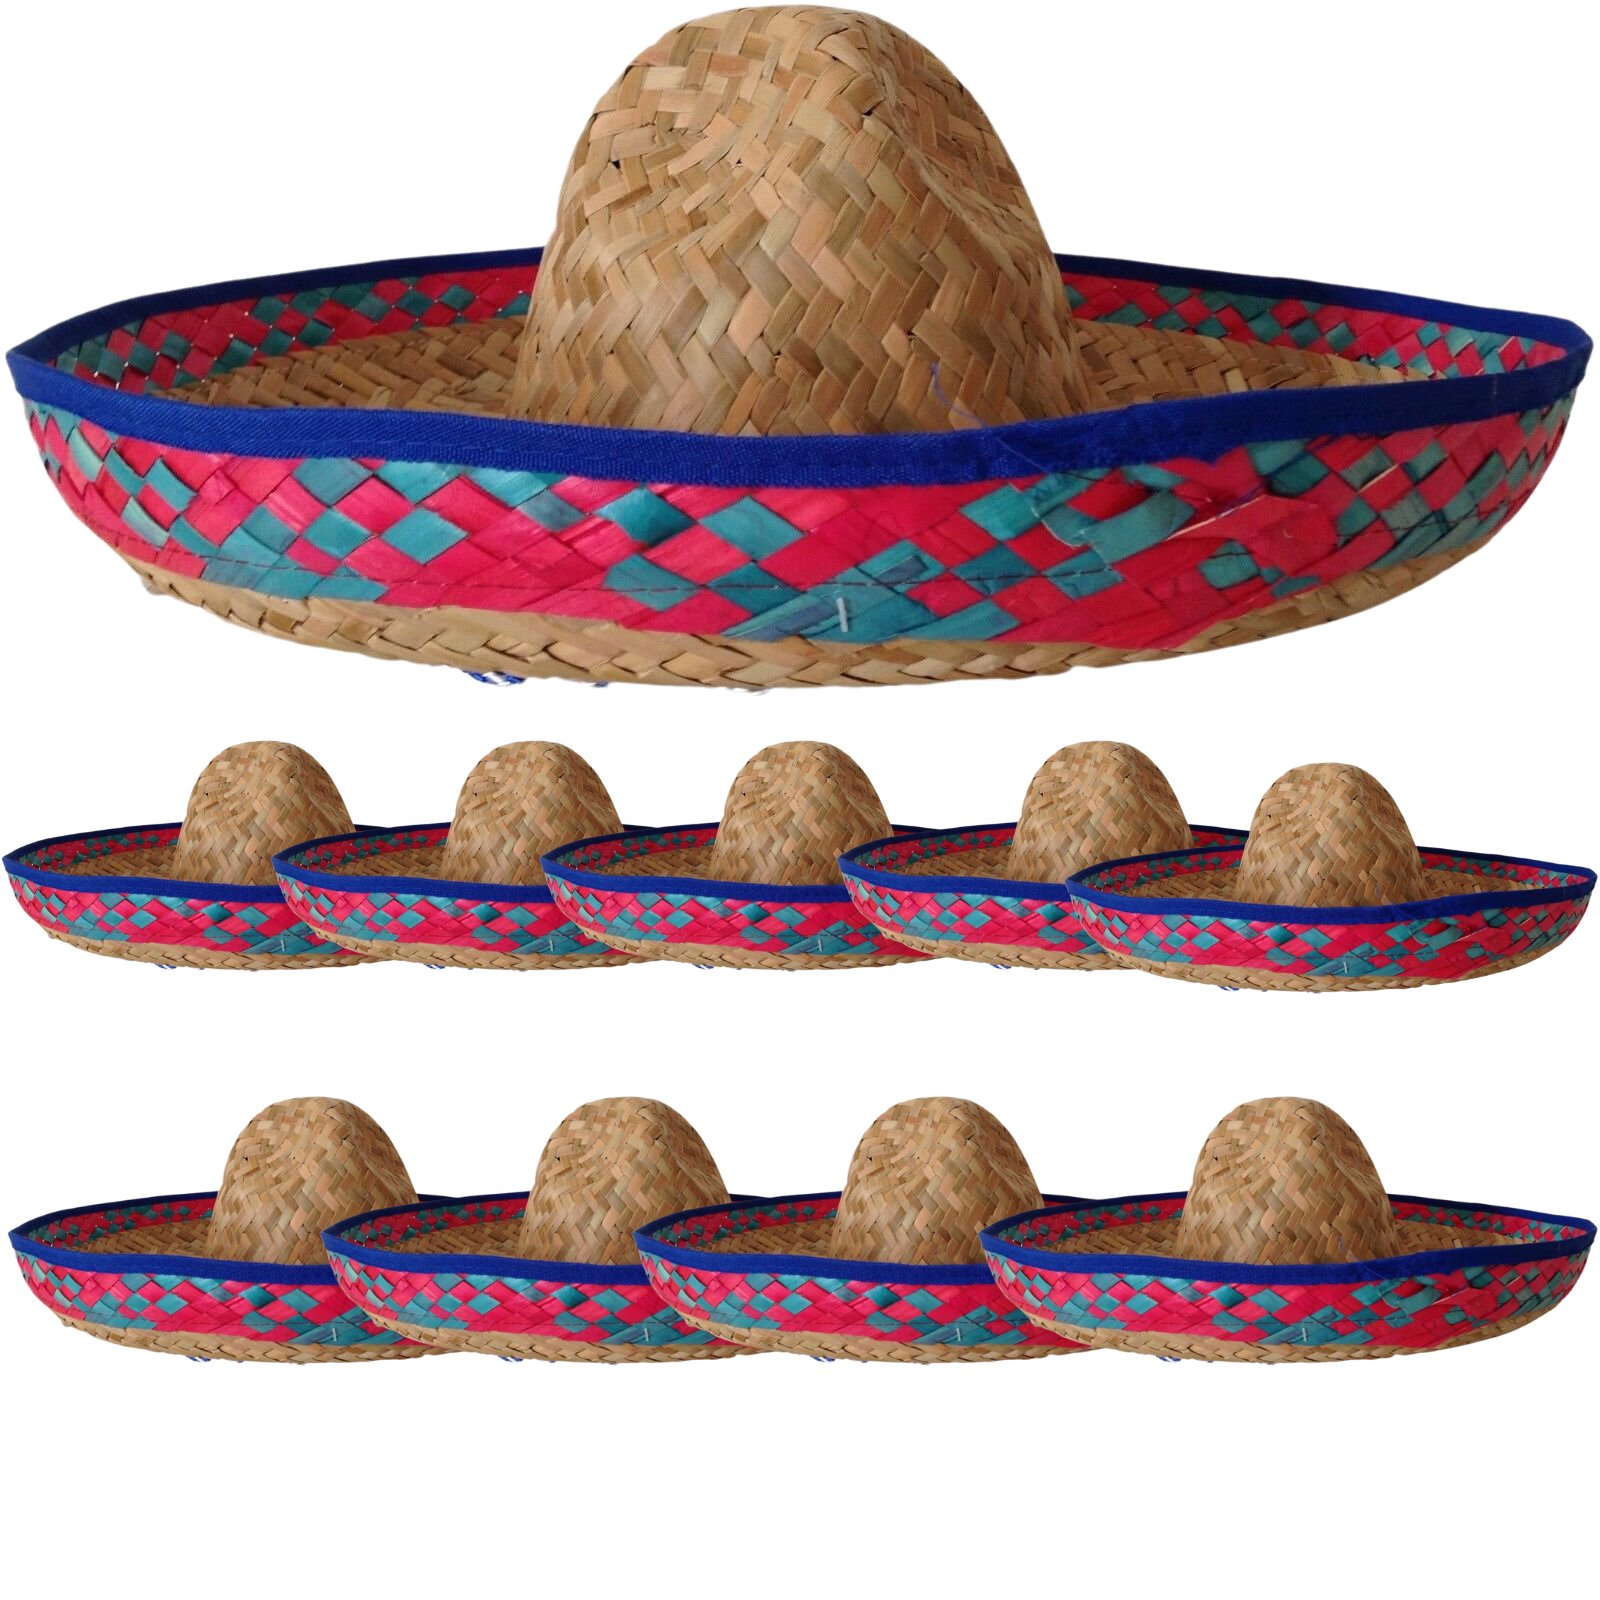 10x Mexican SOMBRERO Fancy Dress Straw Party Costume Hat Cap Spanish ... 8ed12801094